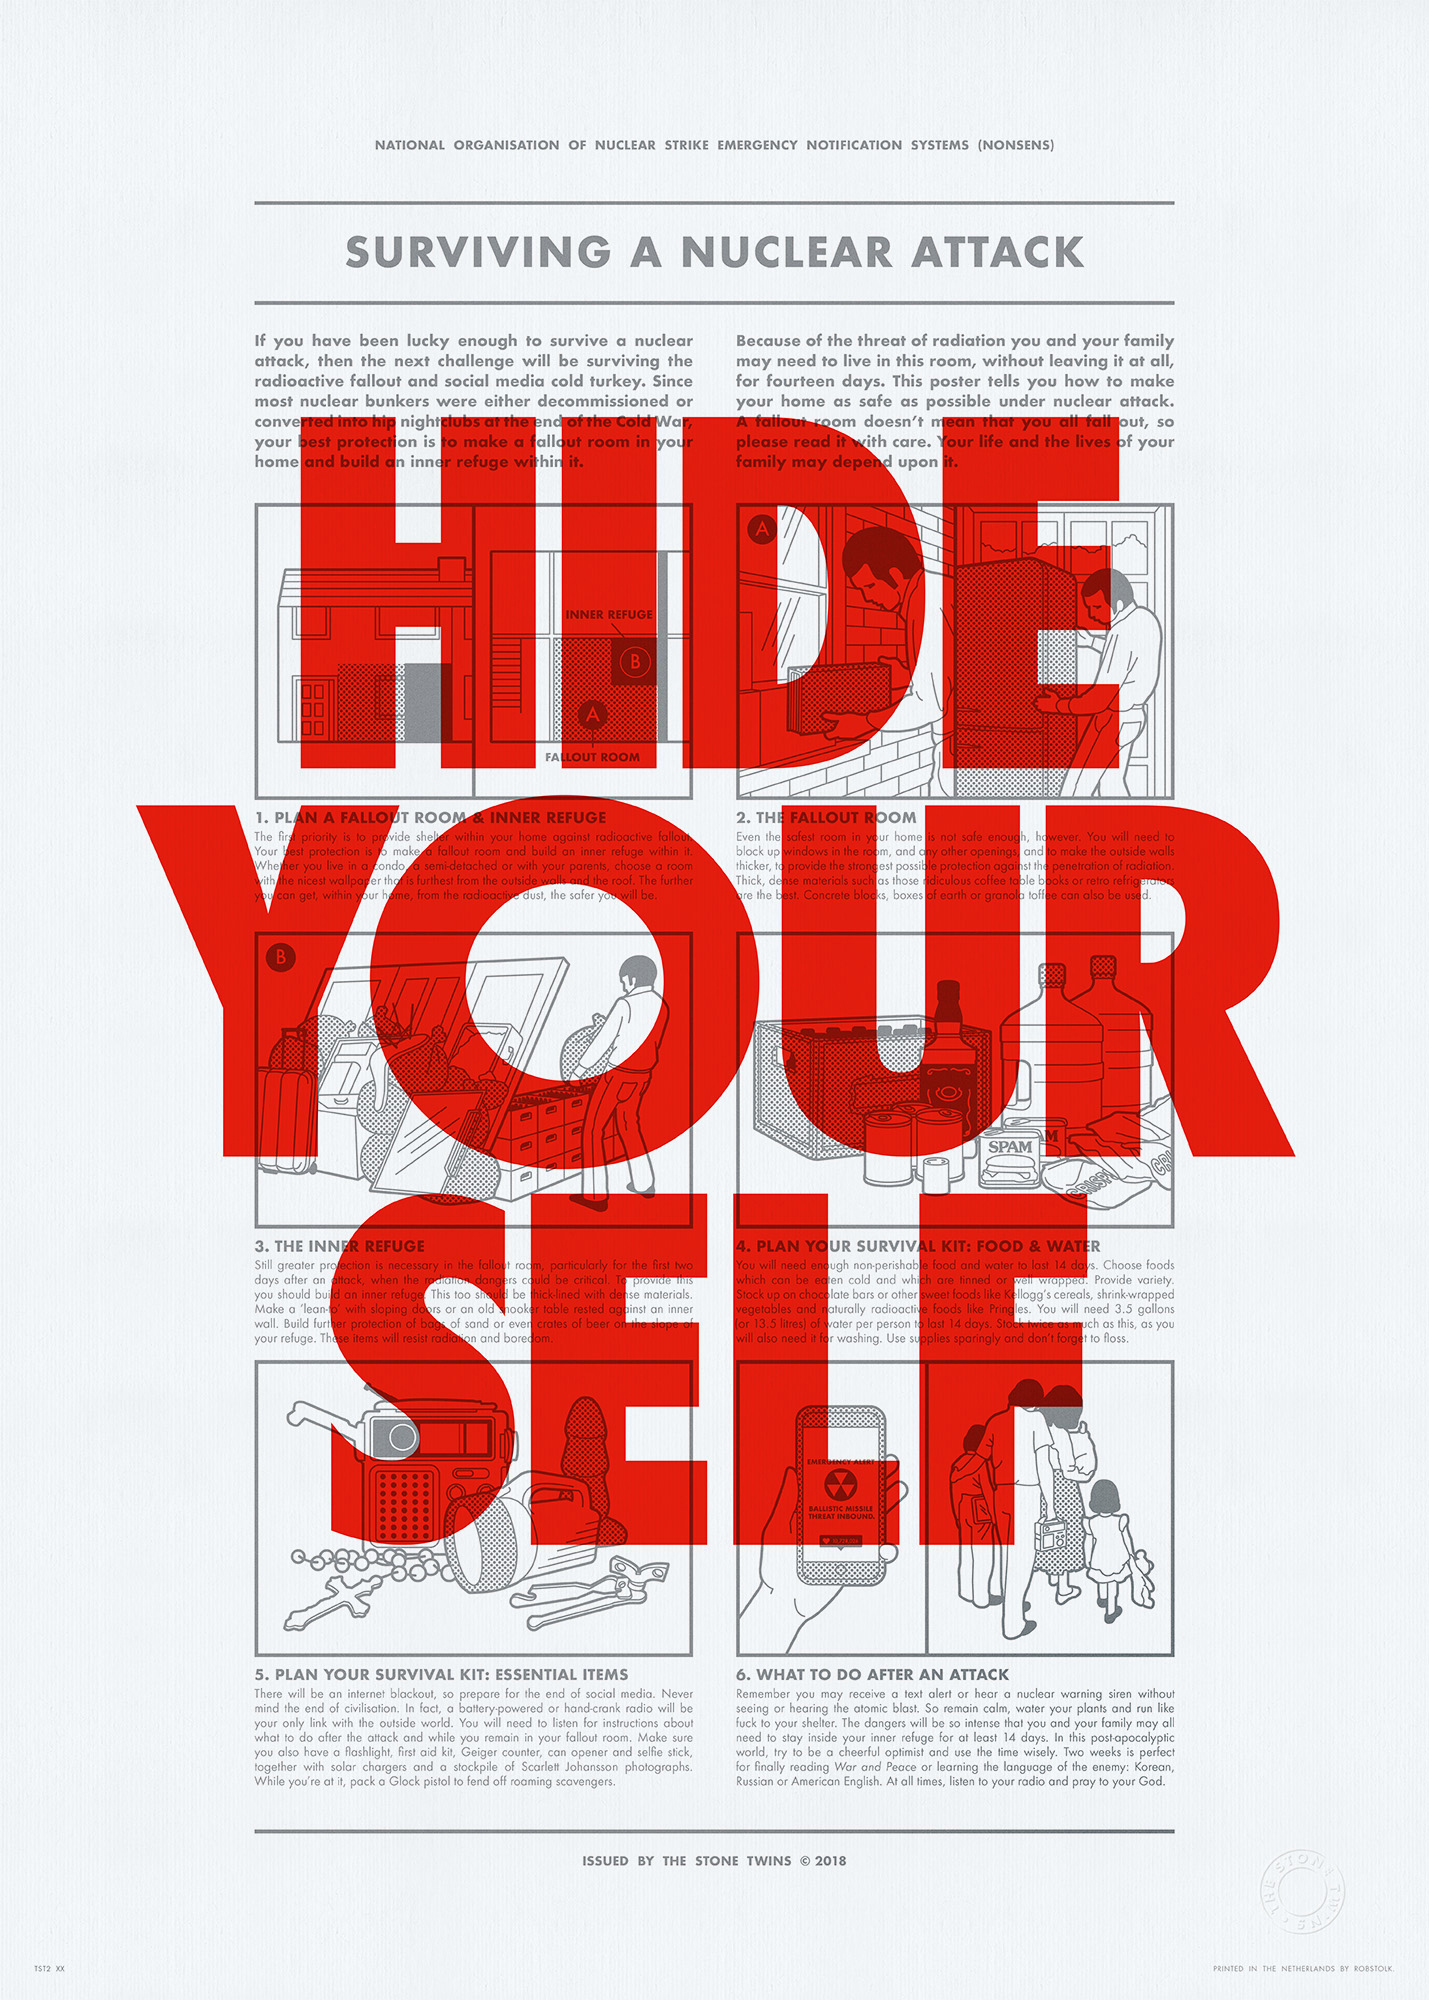 Cover image: Hide Your Self